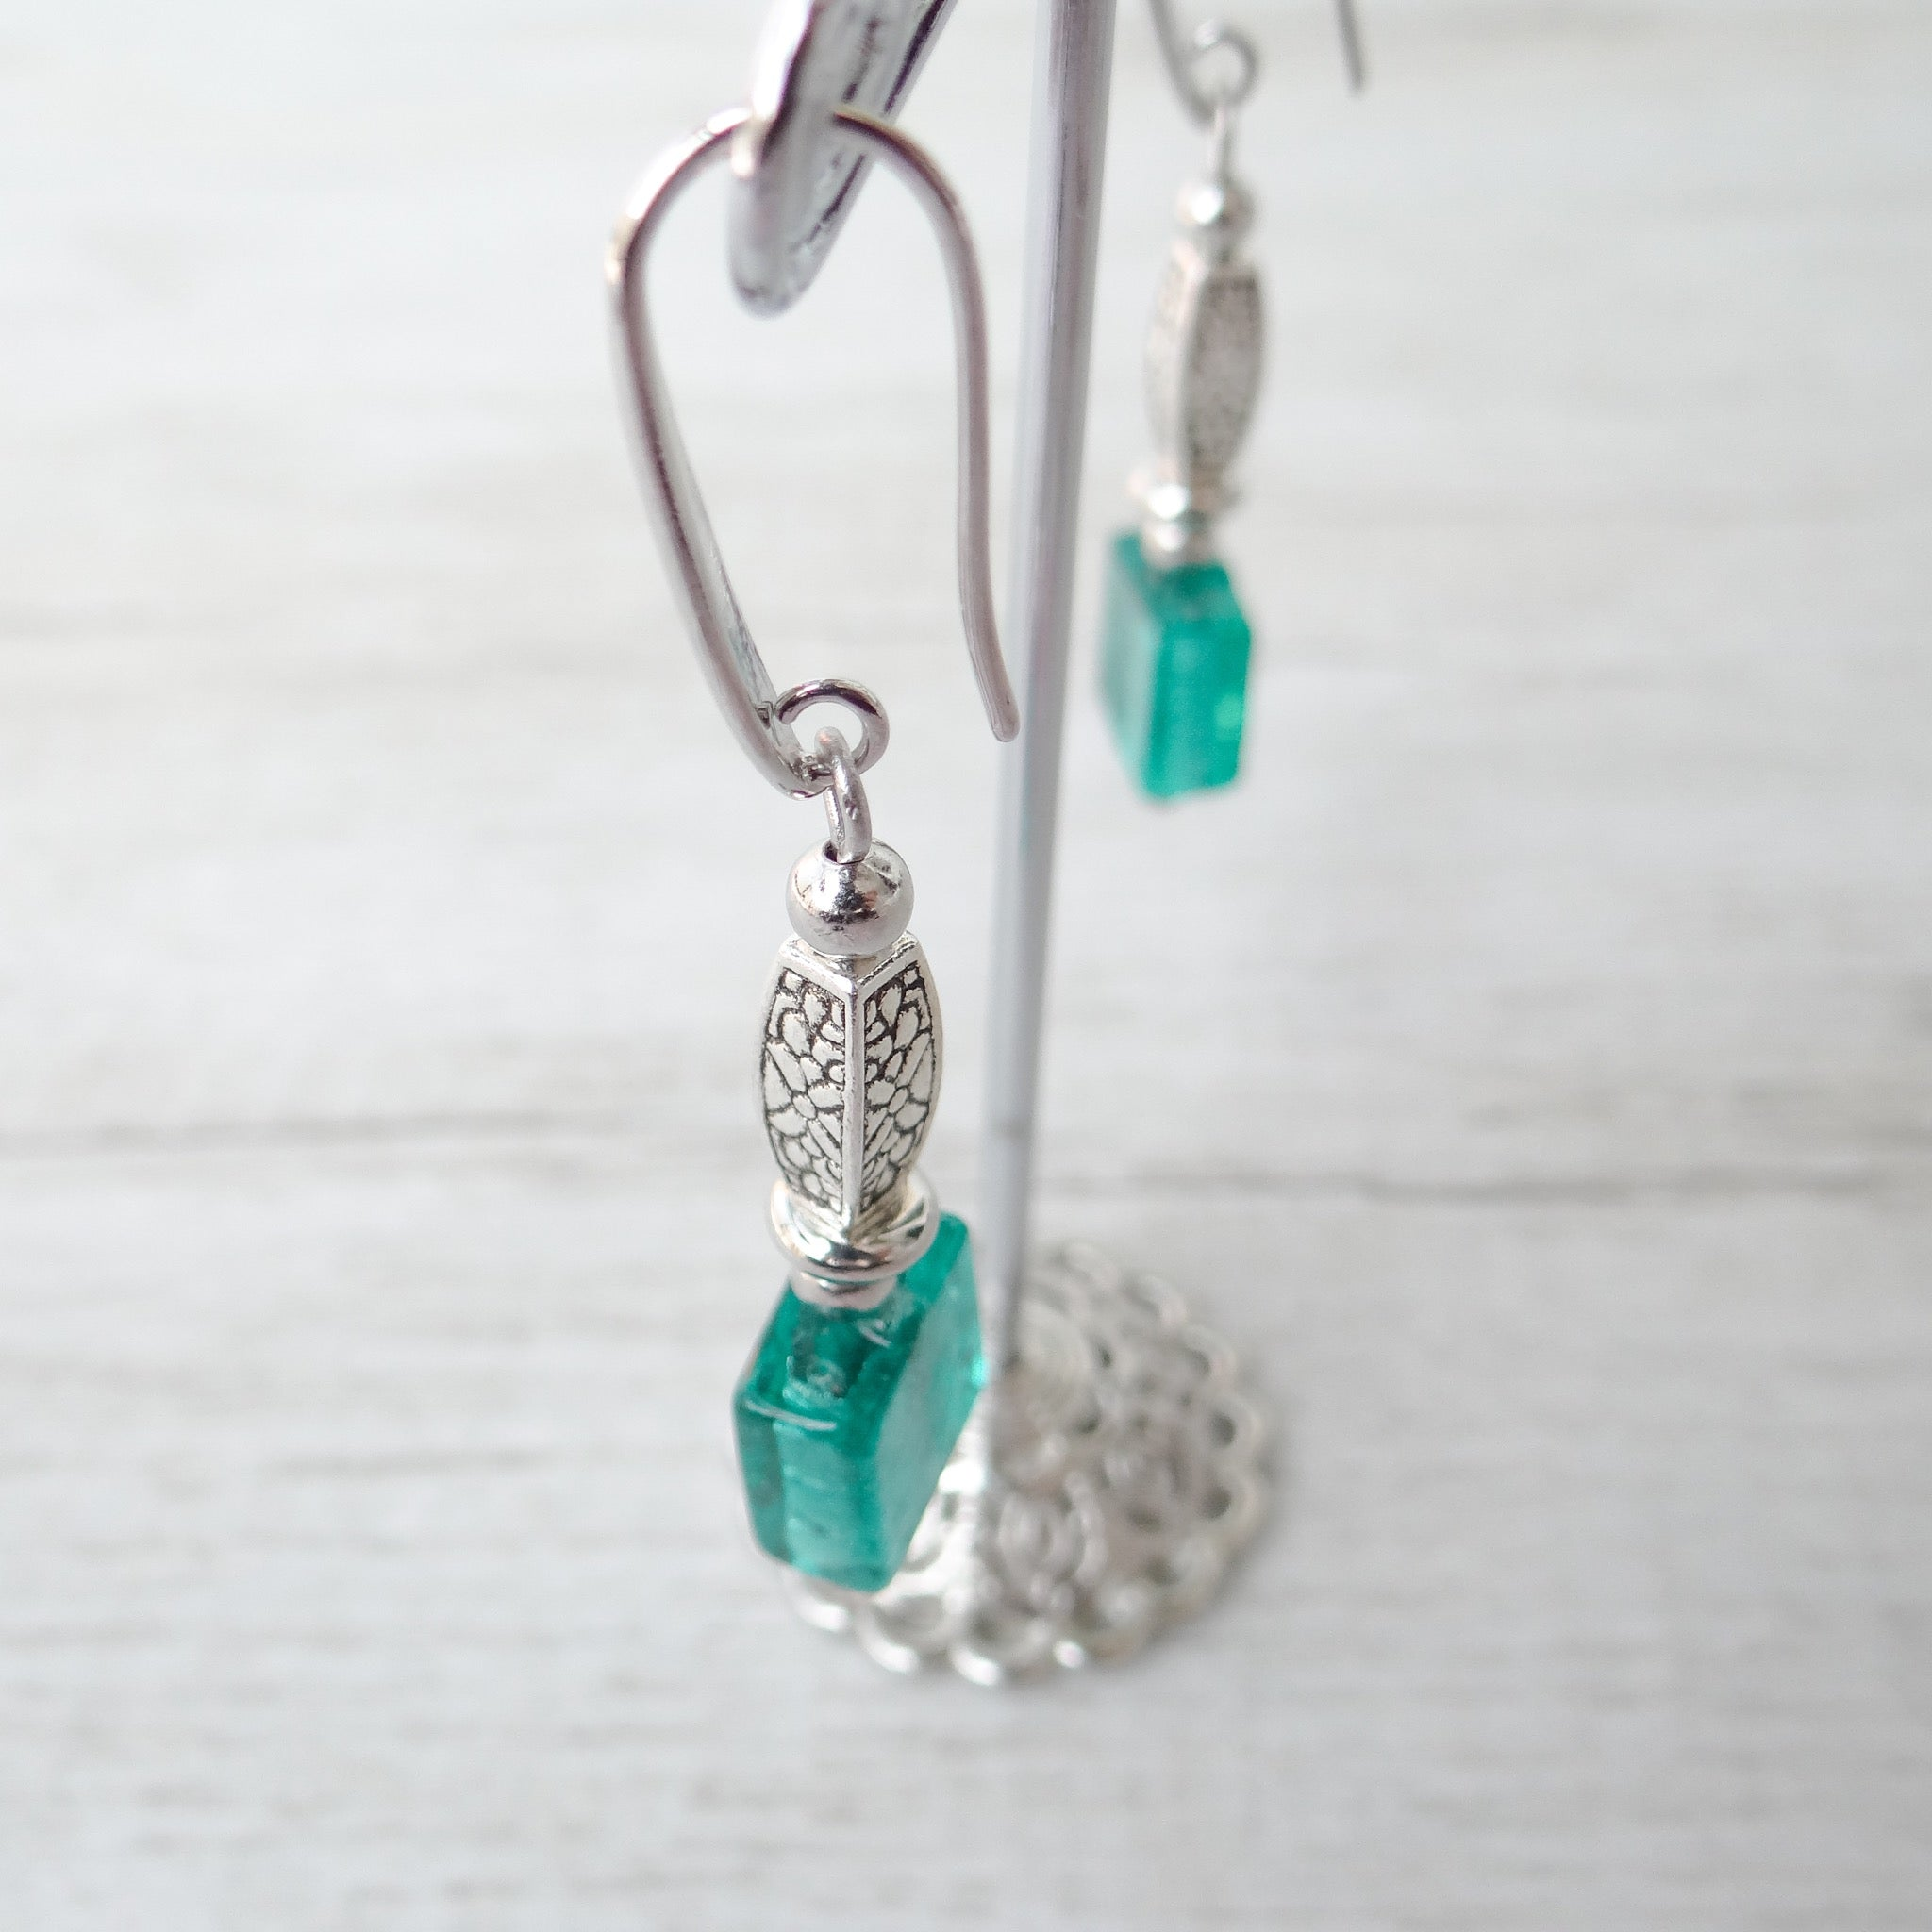 Cantóni - Blue Lagoon Murano Glass Earrings